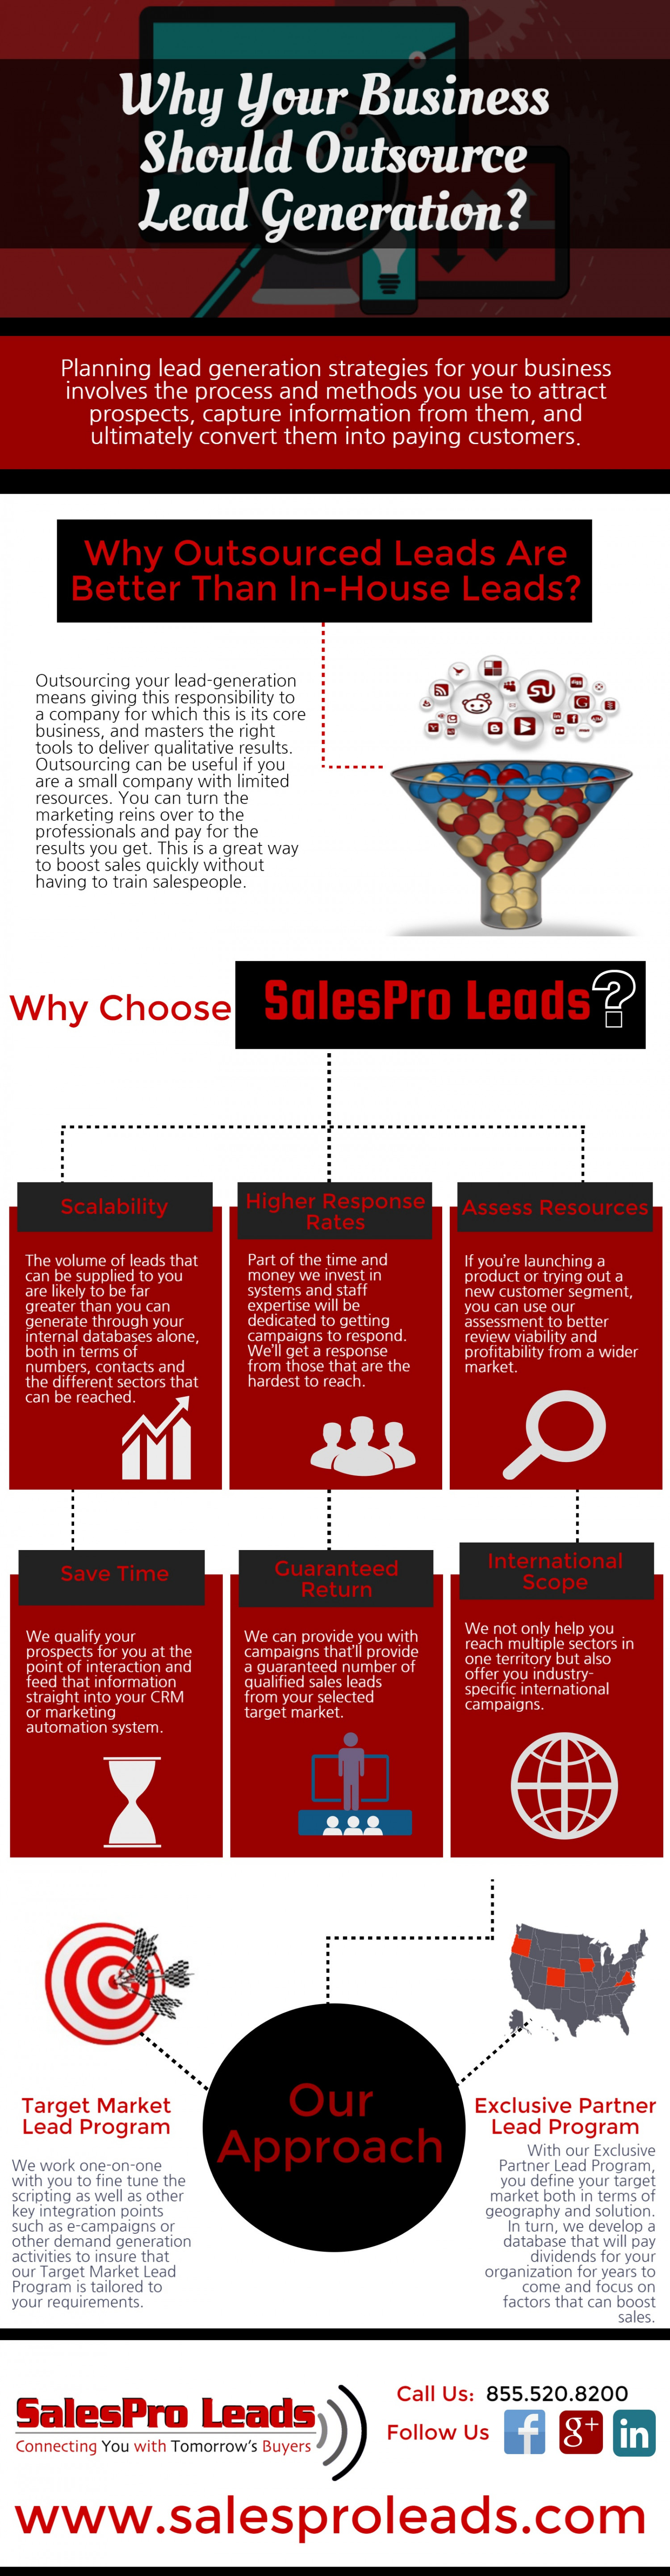 Should Your Business Outsource Lead Generation? Infographic